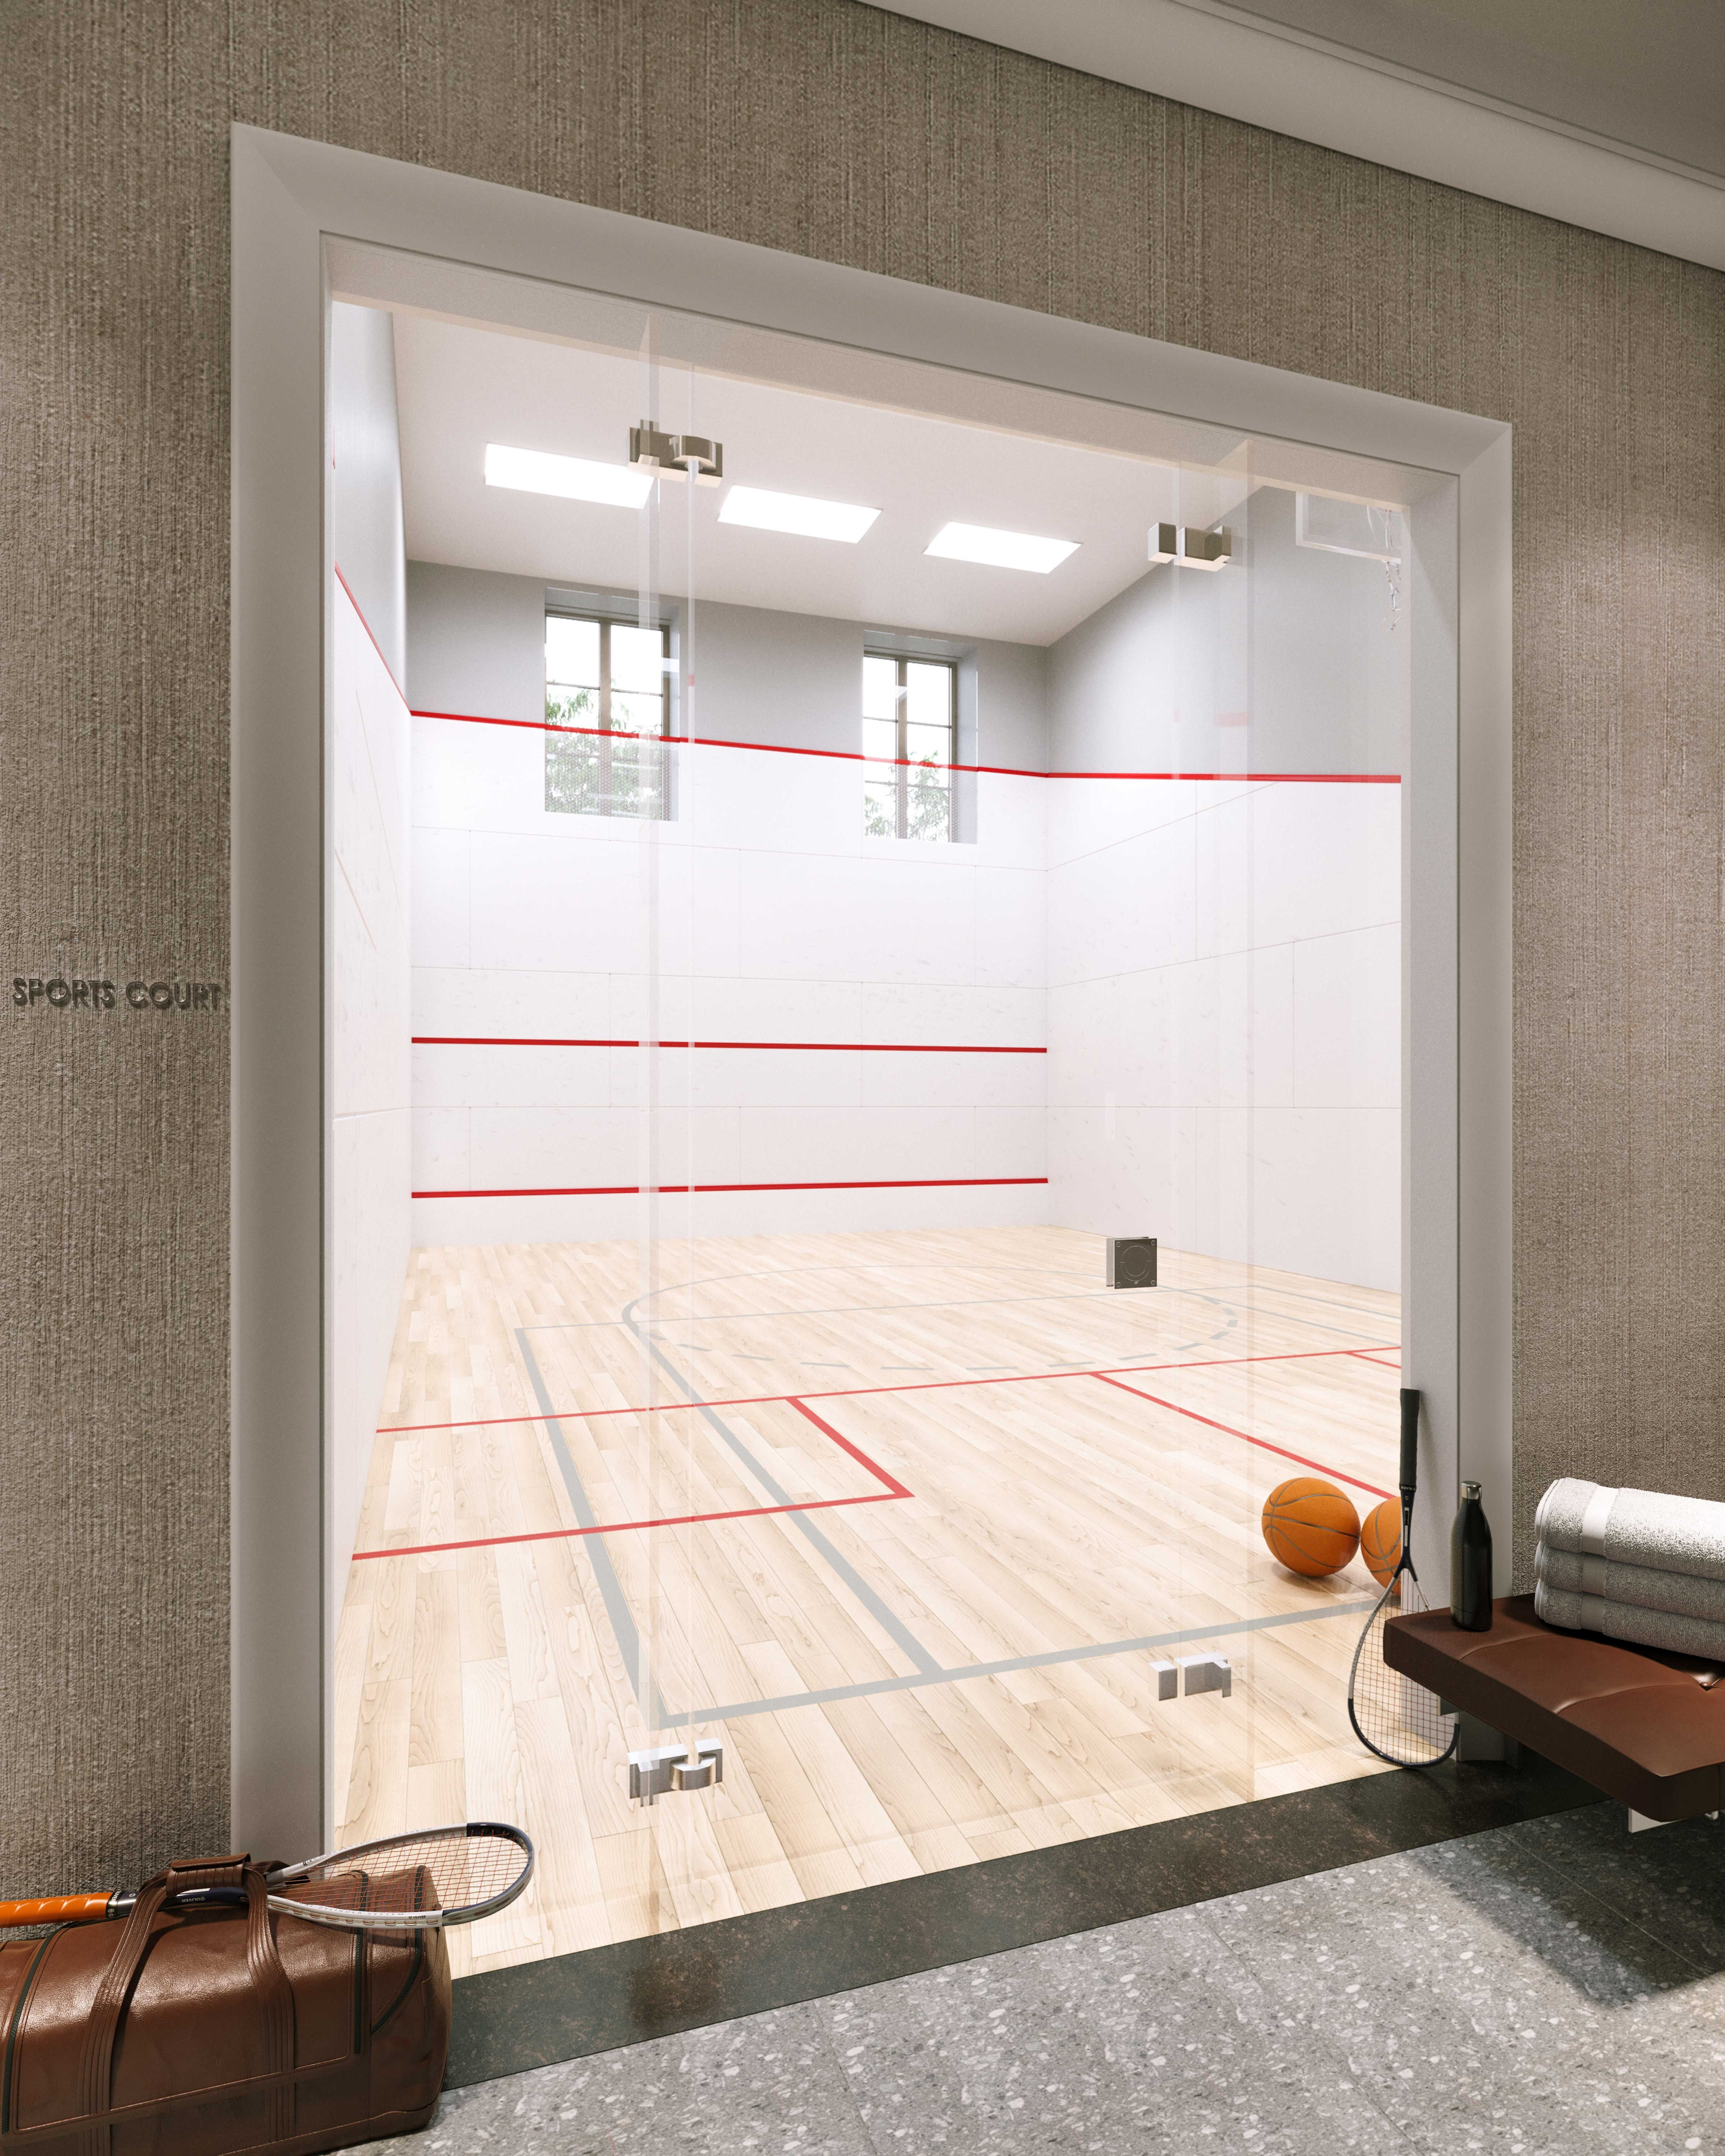 International Squash Court / Sports Court with retractable basketball hoop